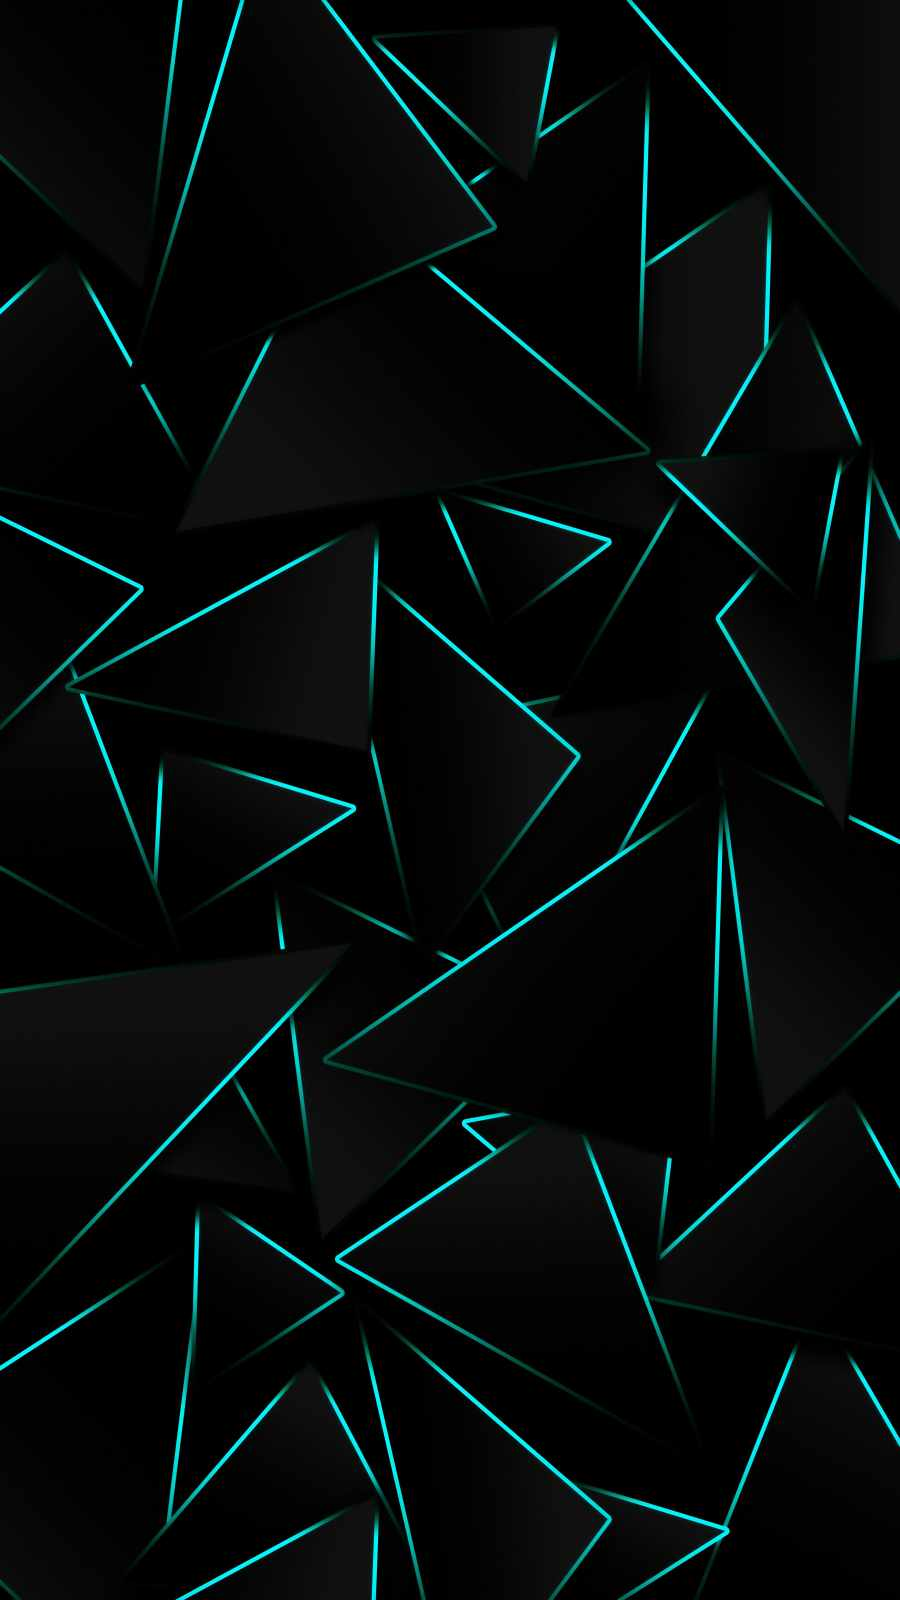 Black Design iPhone Wallpaper